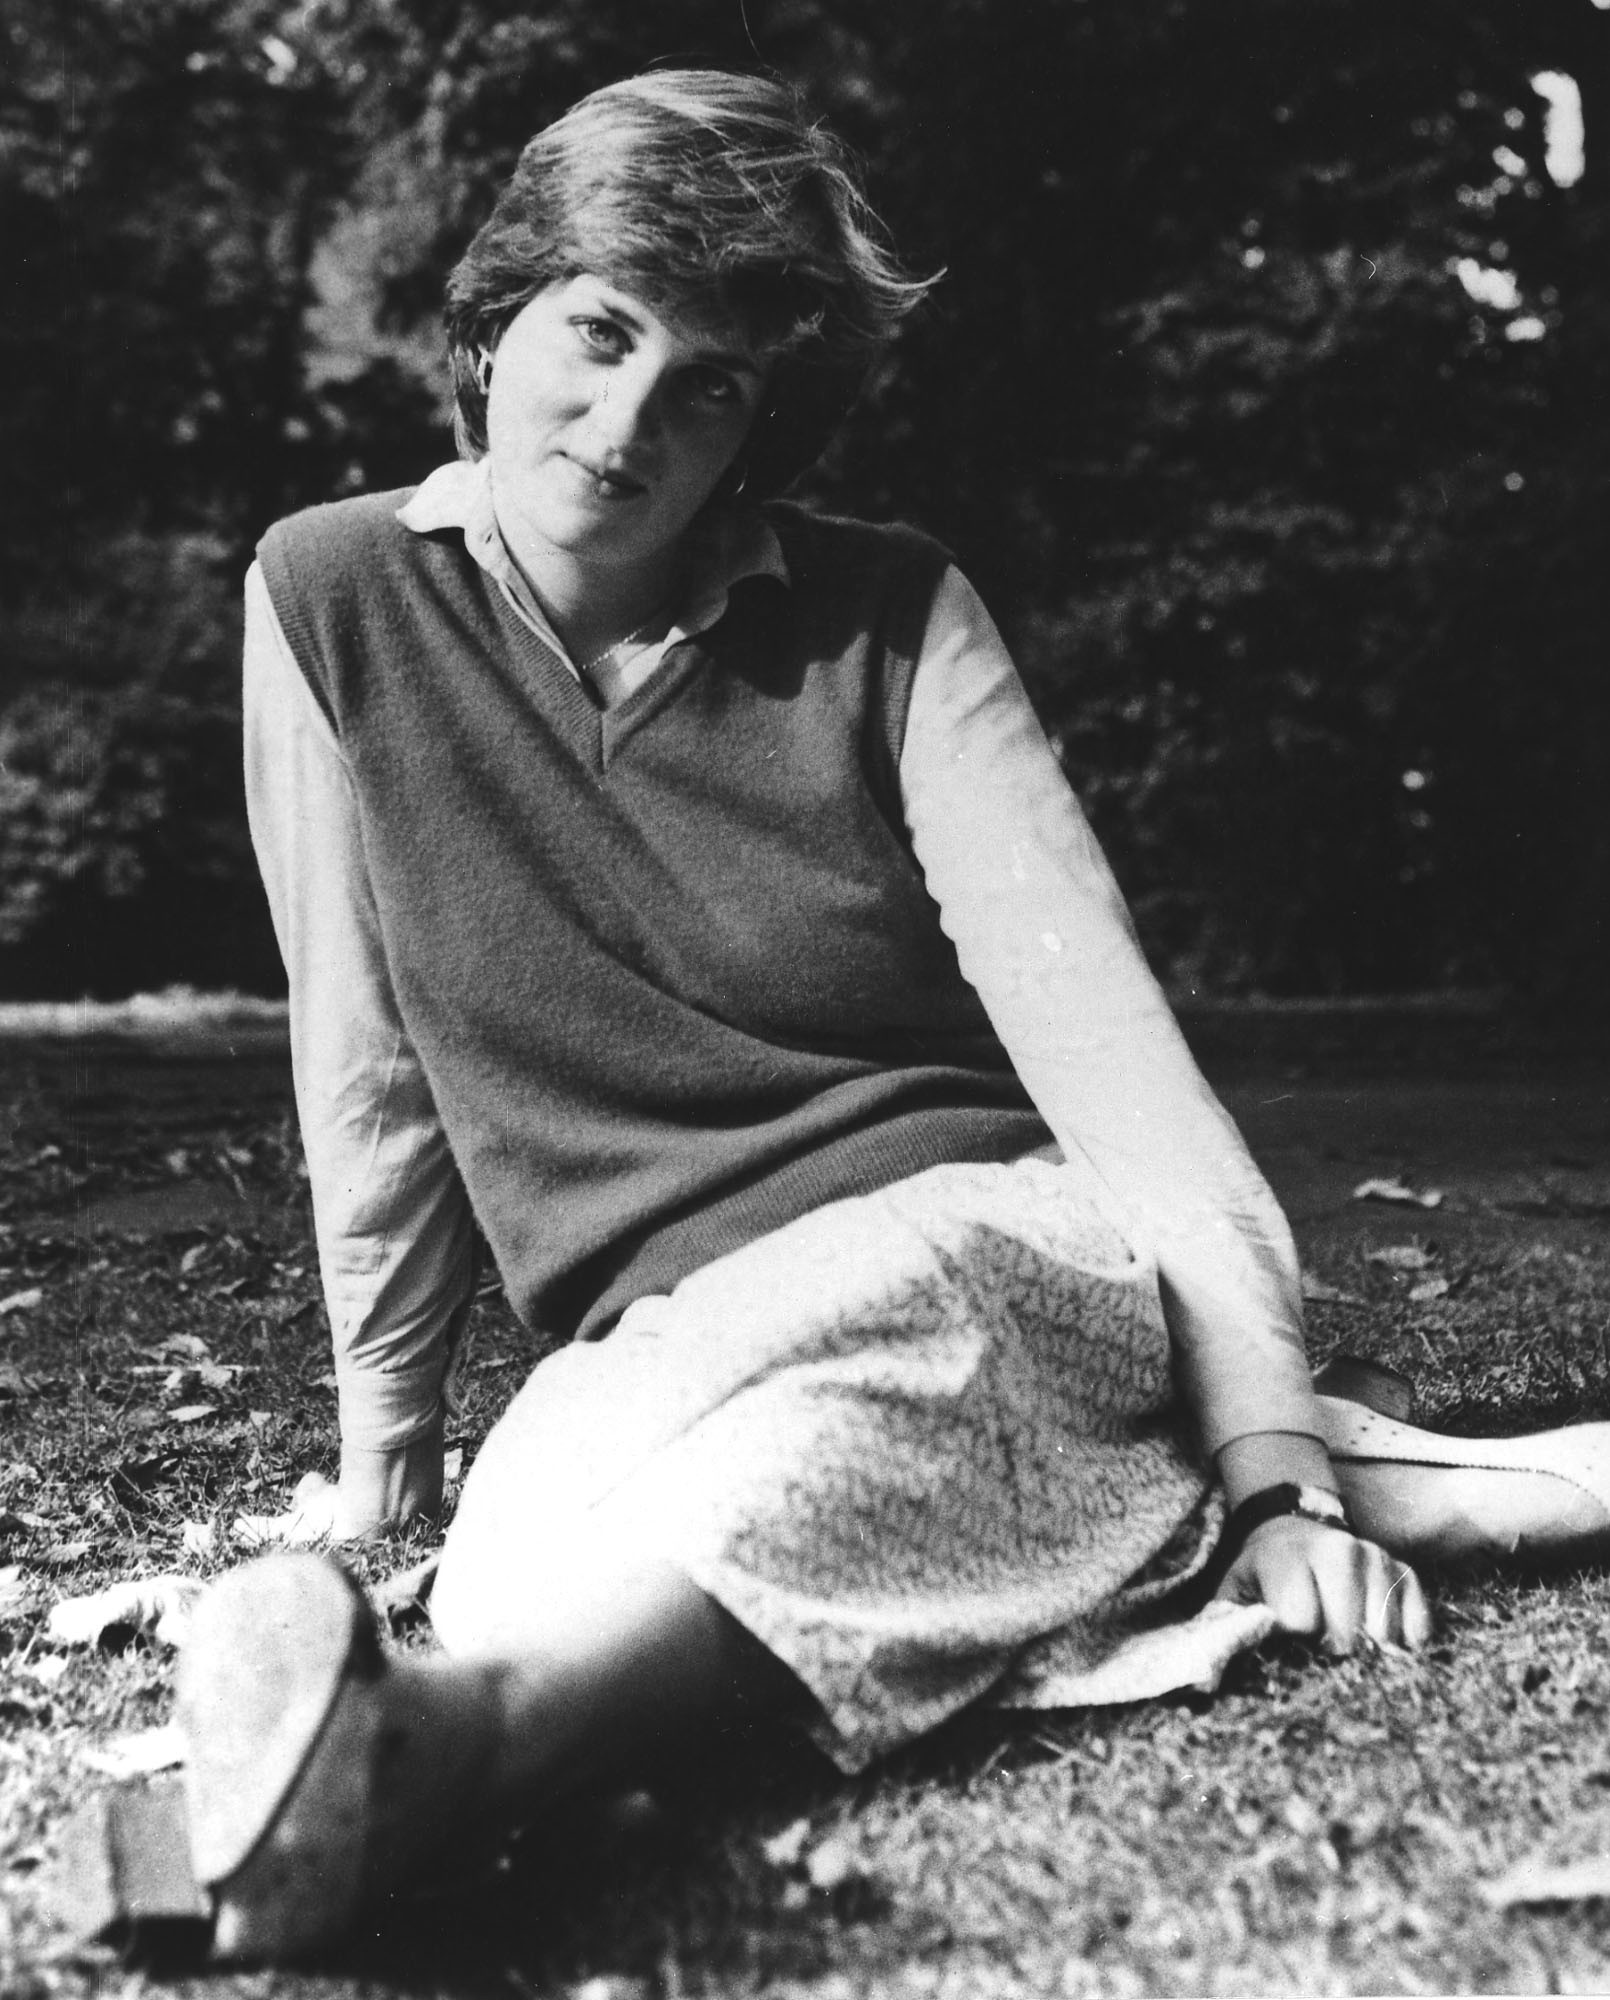 "FILE - In this 1980 file photo, Lady Diana Spencer, 21, Prince Charles's girlfriend, is pictured at the Kindergarten in St. Georges Square, Pimlico, London, where she works as a teacher. It has been 20 years since the death of Princess Diana in a car crash in Paris and the outpouring of grief that followed the death of the ""people's princess.""                   (AP Photo, File)"